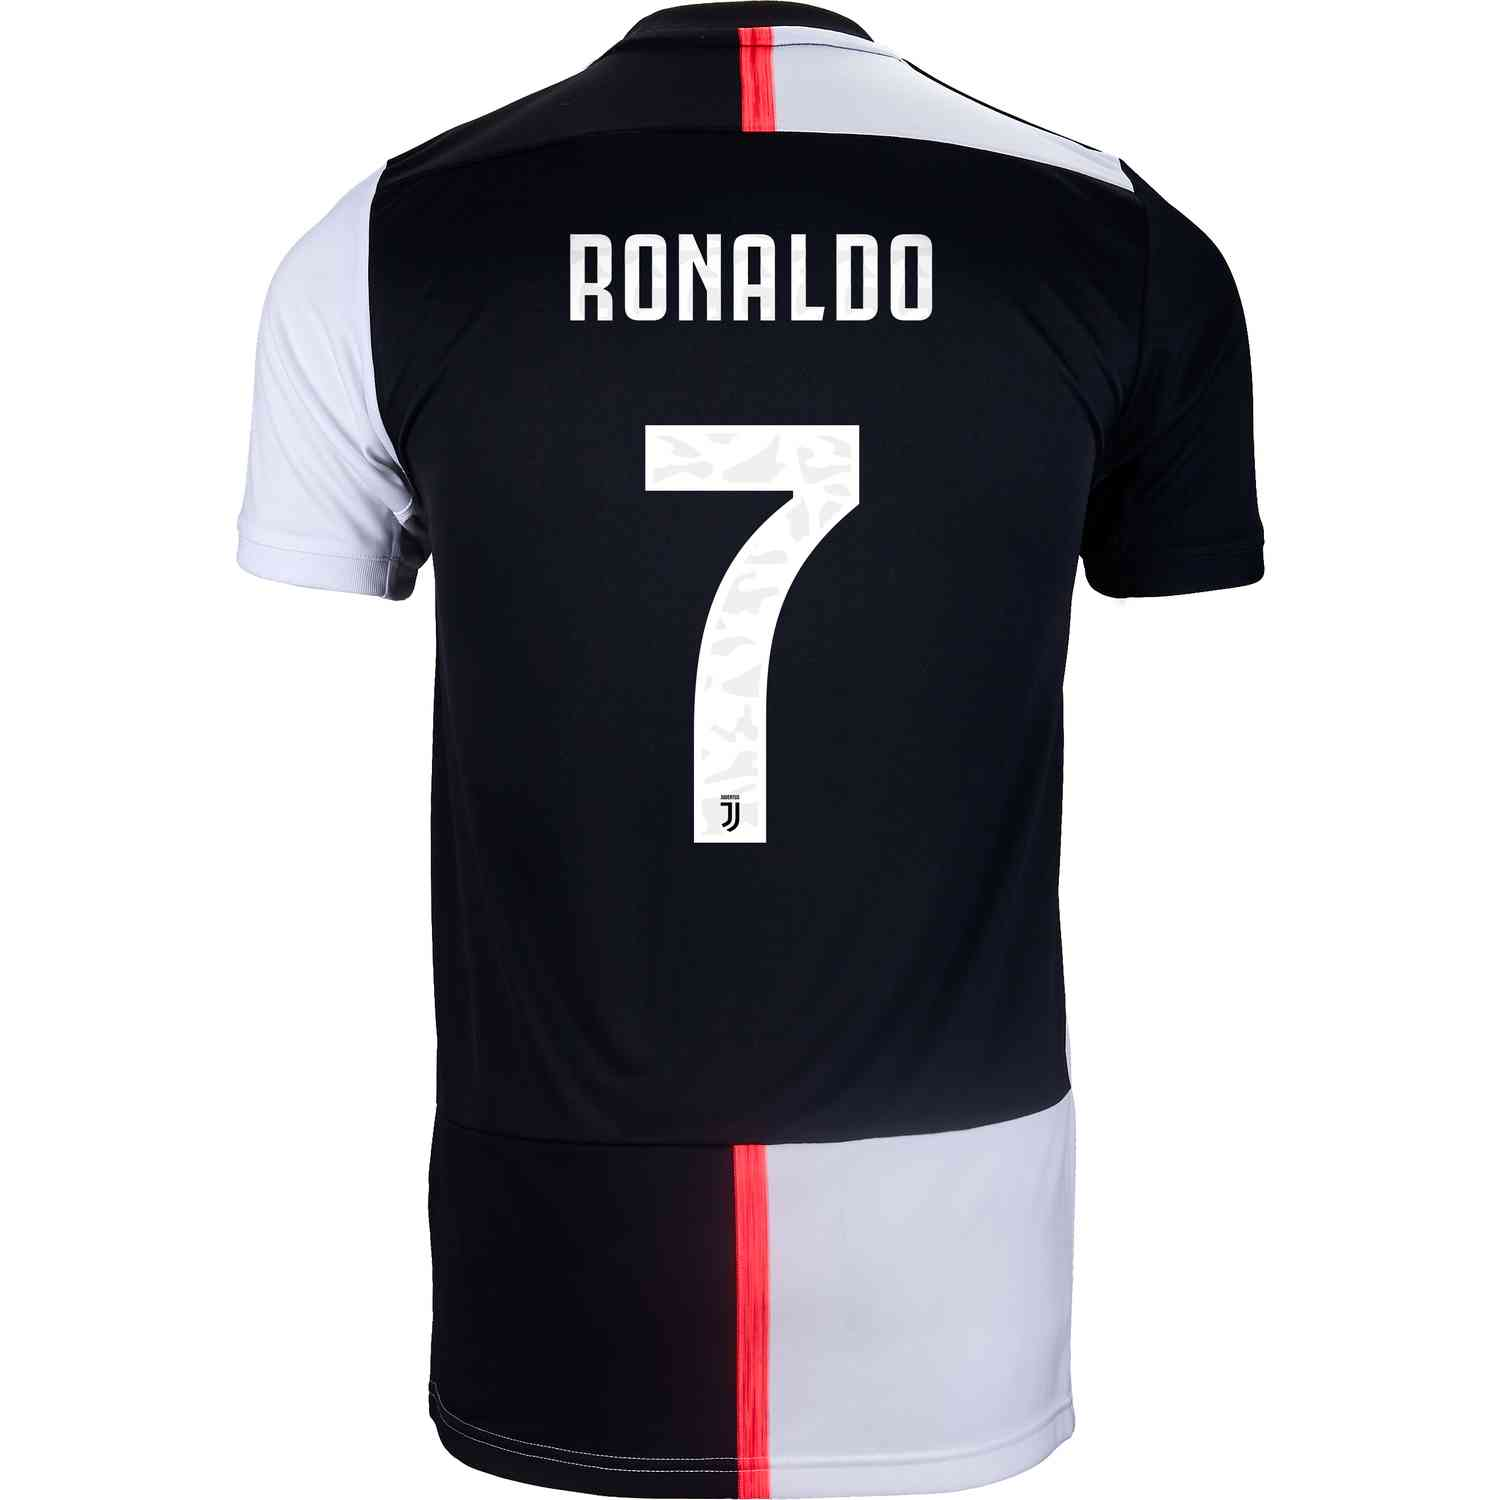 finest selection aed47 dcd85 2019/20 Cristiano Ronaldo Juventus Home Jersey